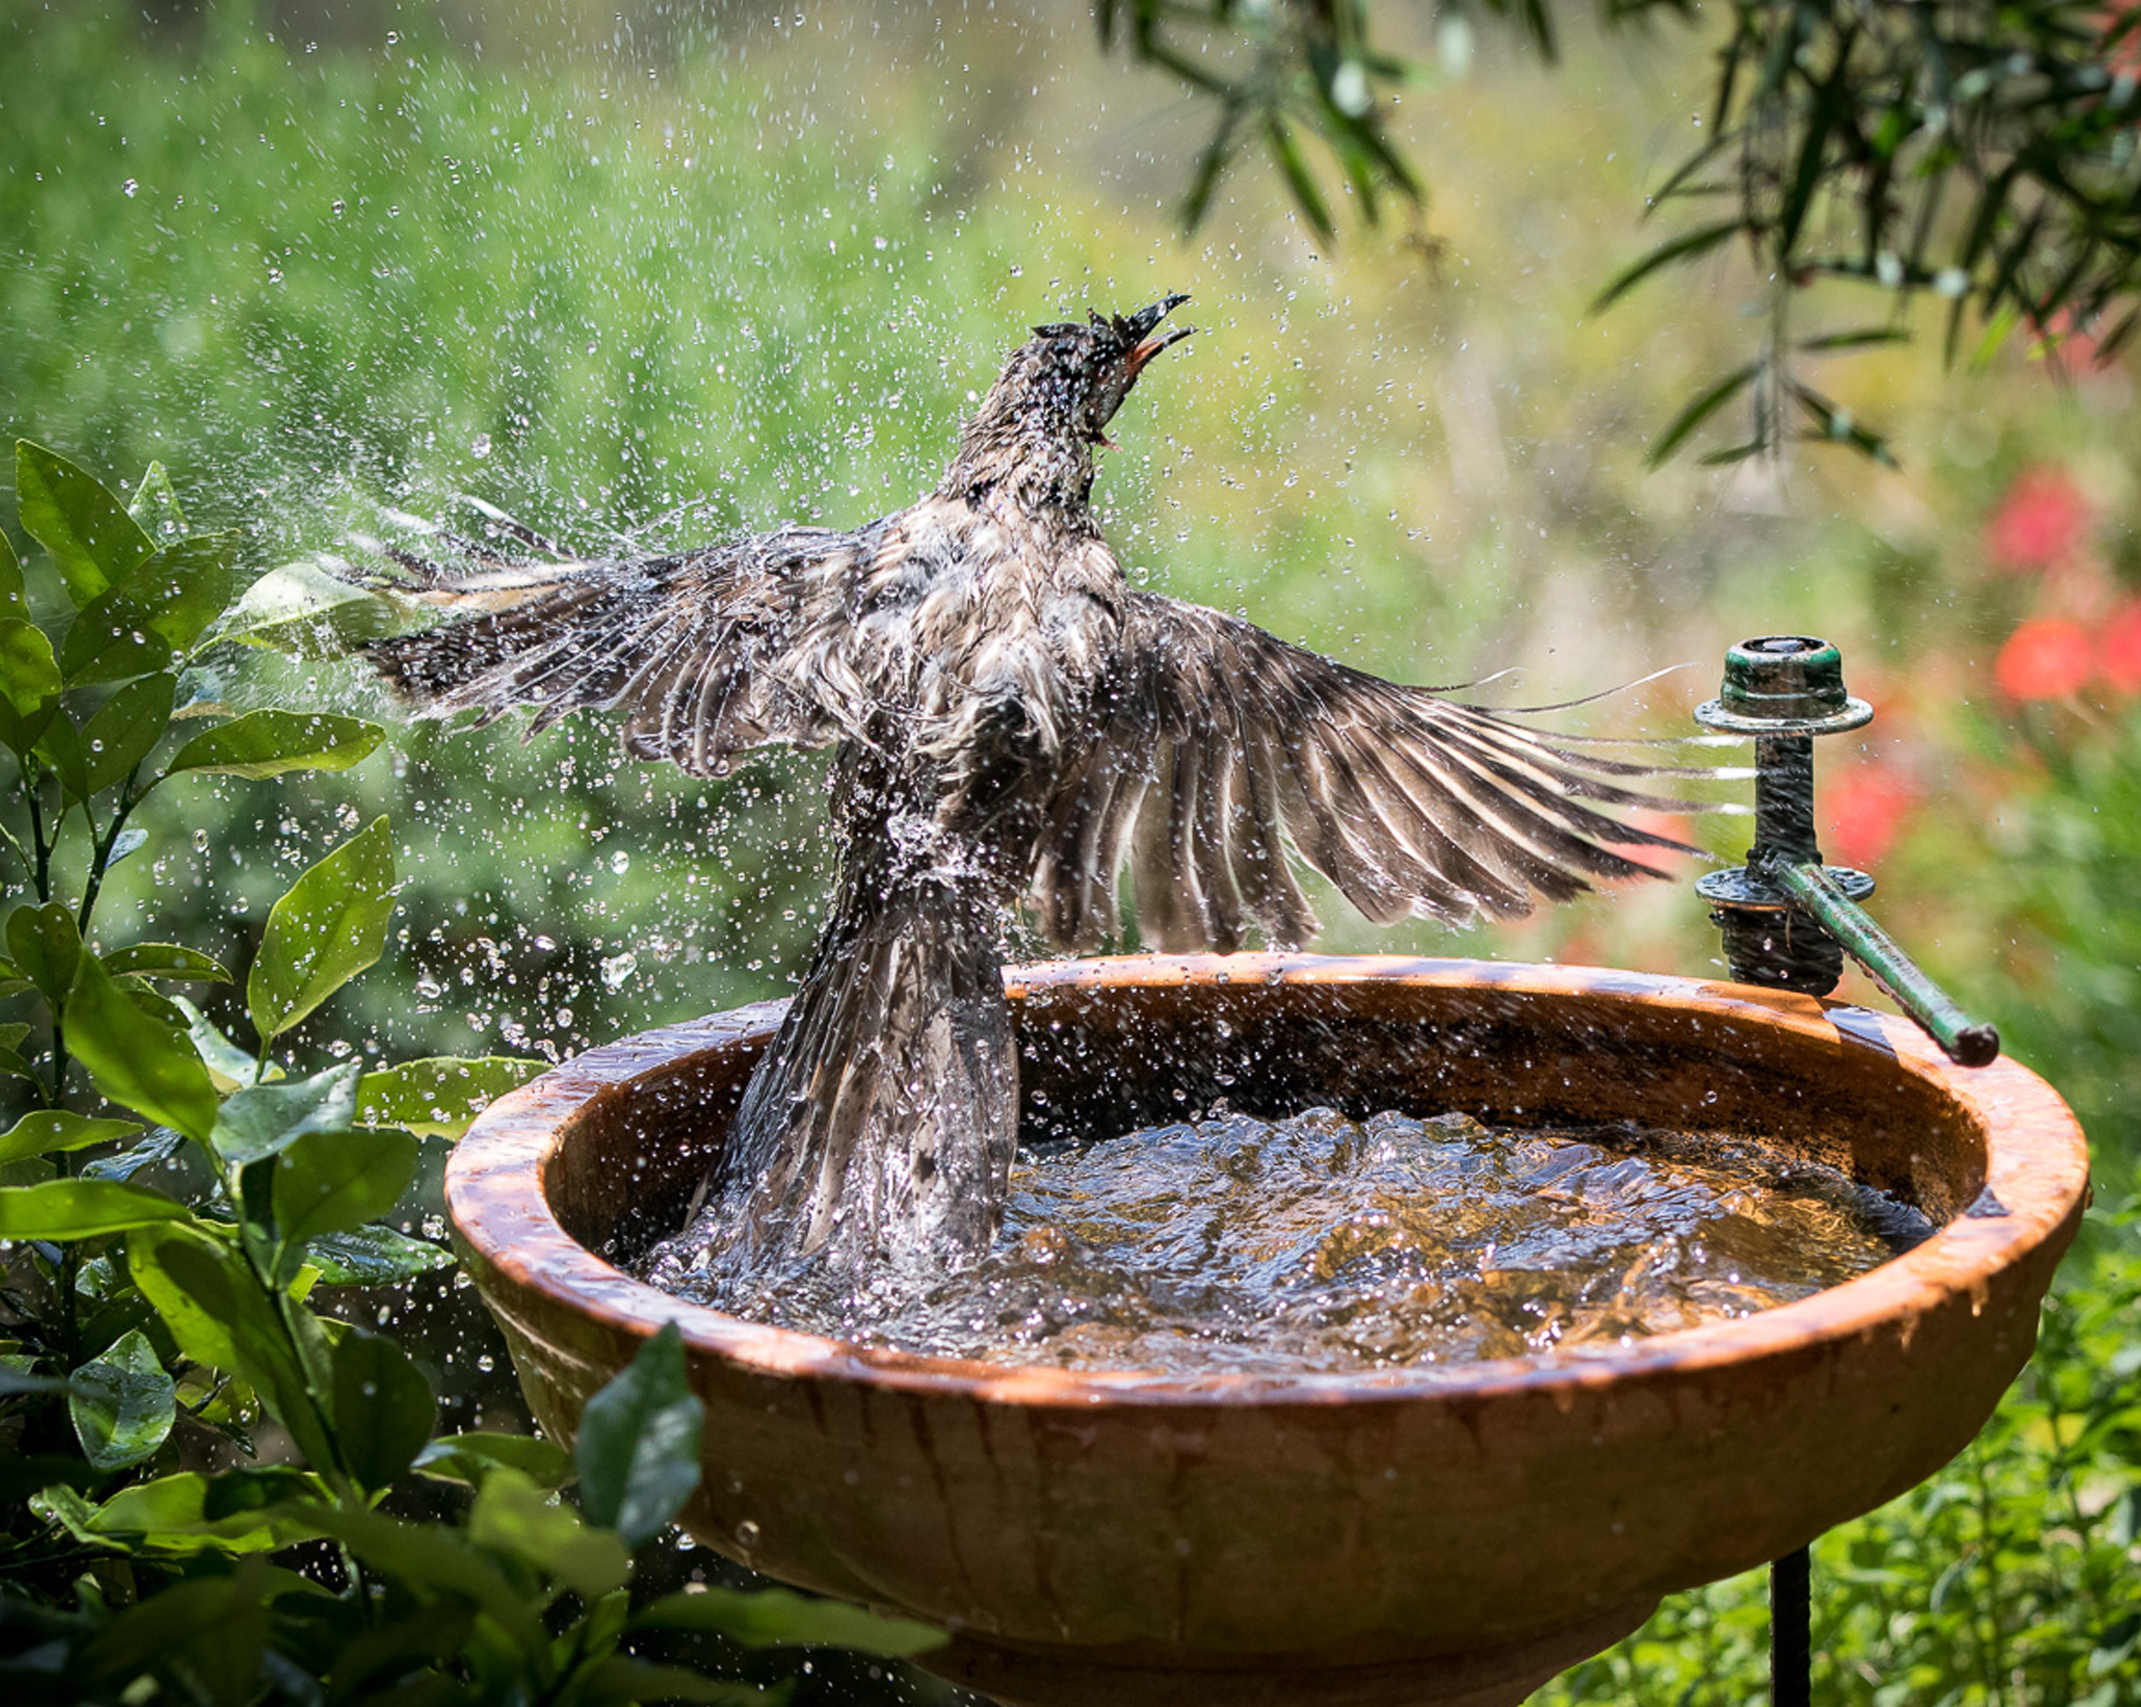 Small backyards can still attract visitors with small water features such as bird baths